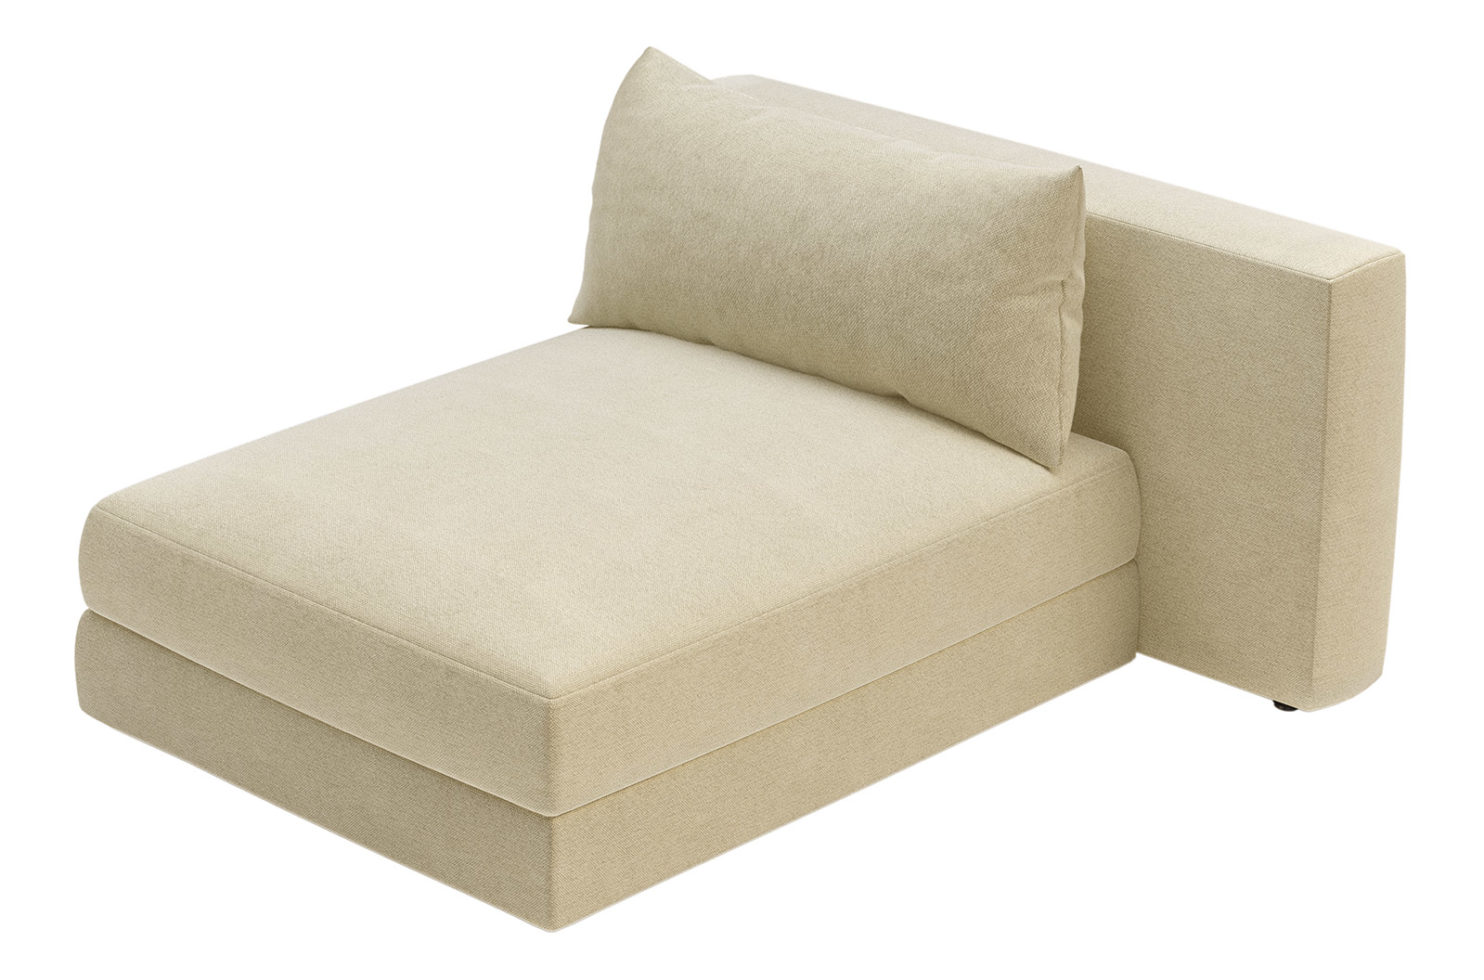 fizz julep armless chaise 105FT002P2 RSA